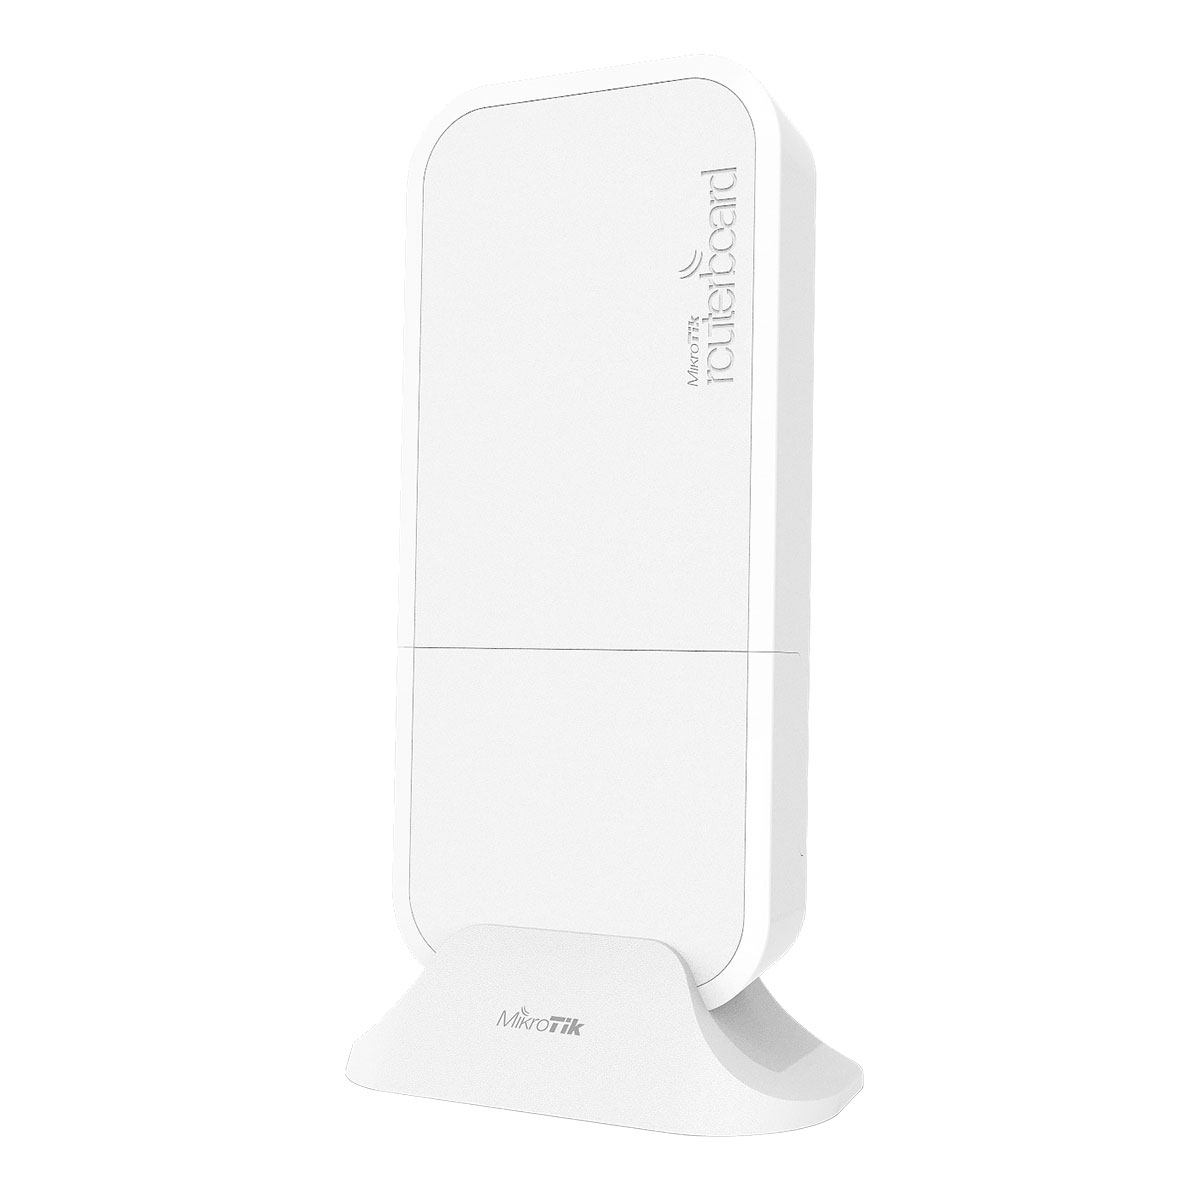 MikroTik Outdoor wAP LTE kit 11825755f0f